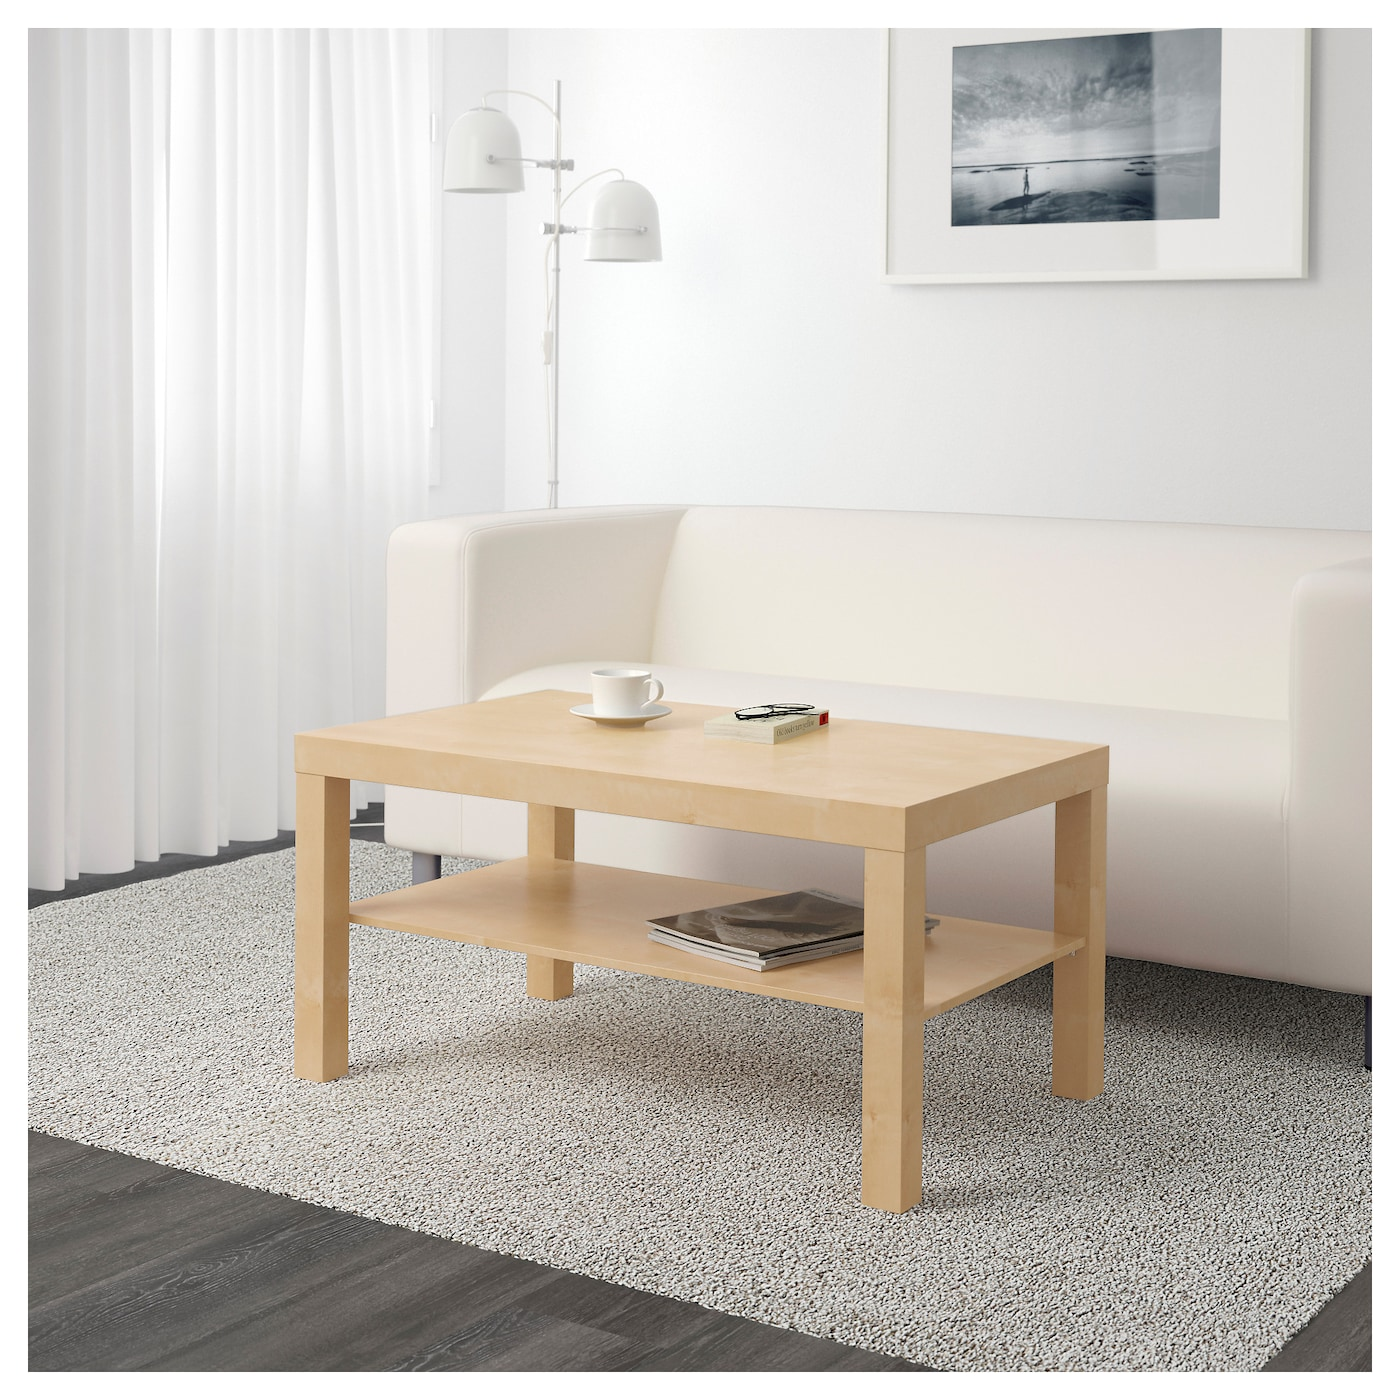 lack coffee table birch effect 90 x 55 cm ikea. Black Bedroom Furniture Sets. Home Design Ideas